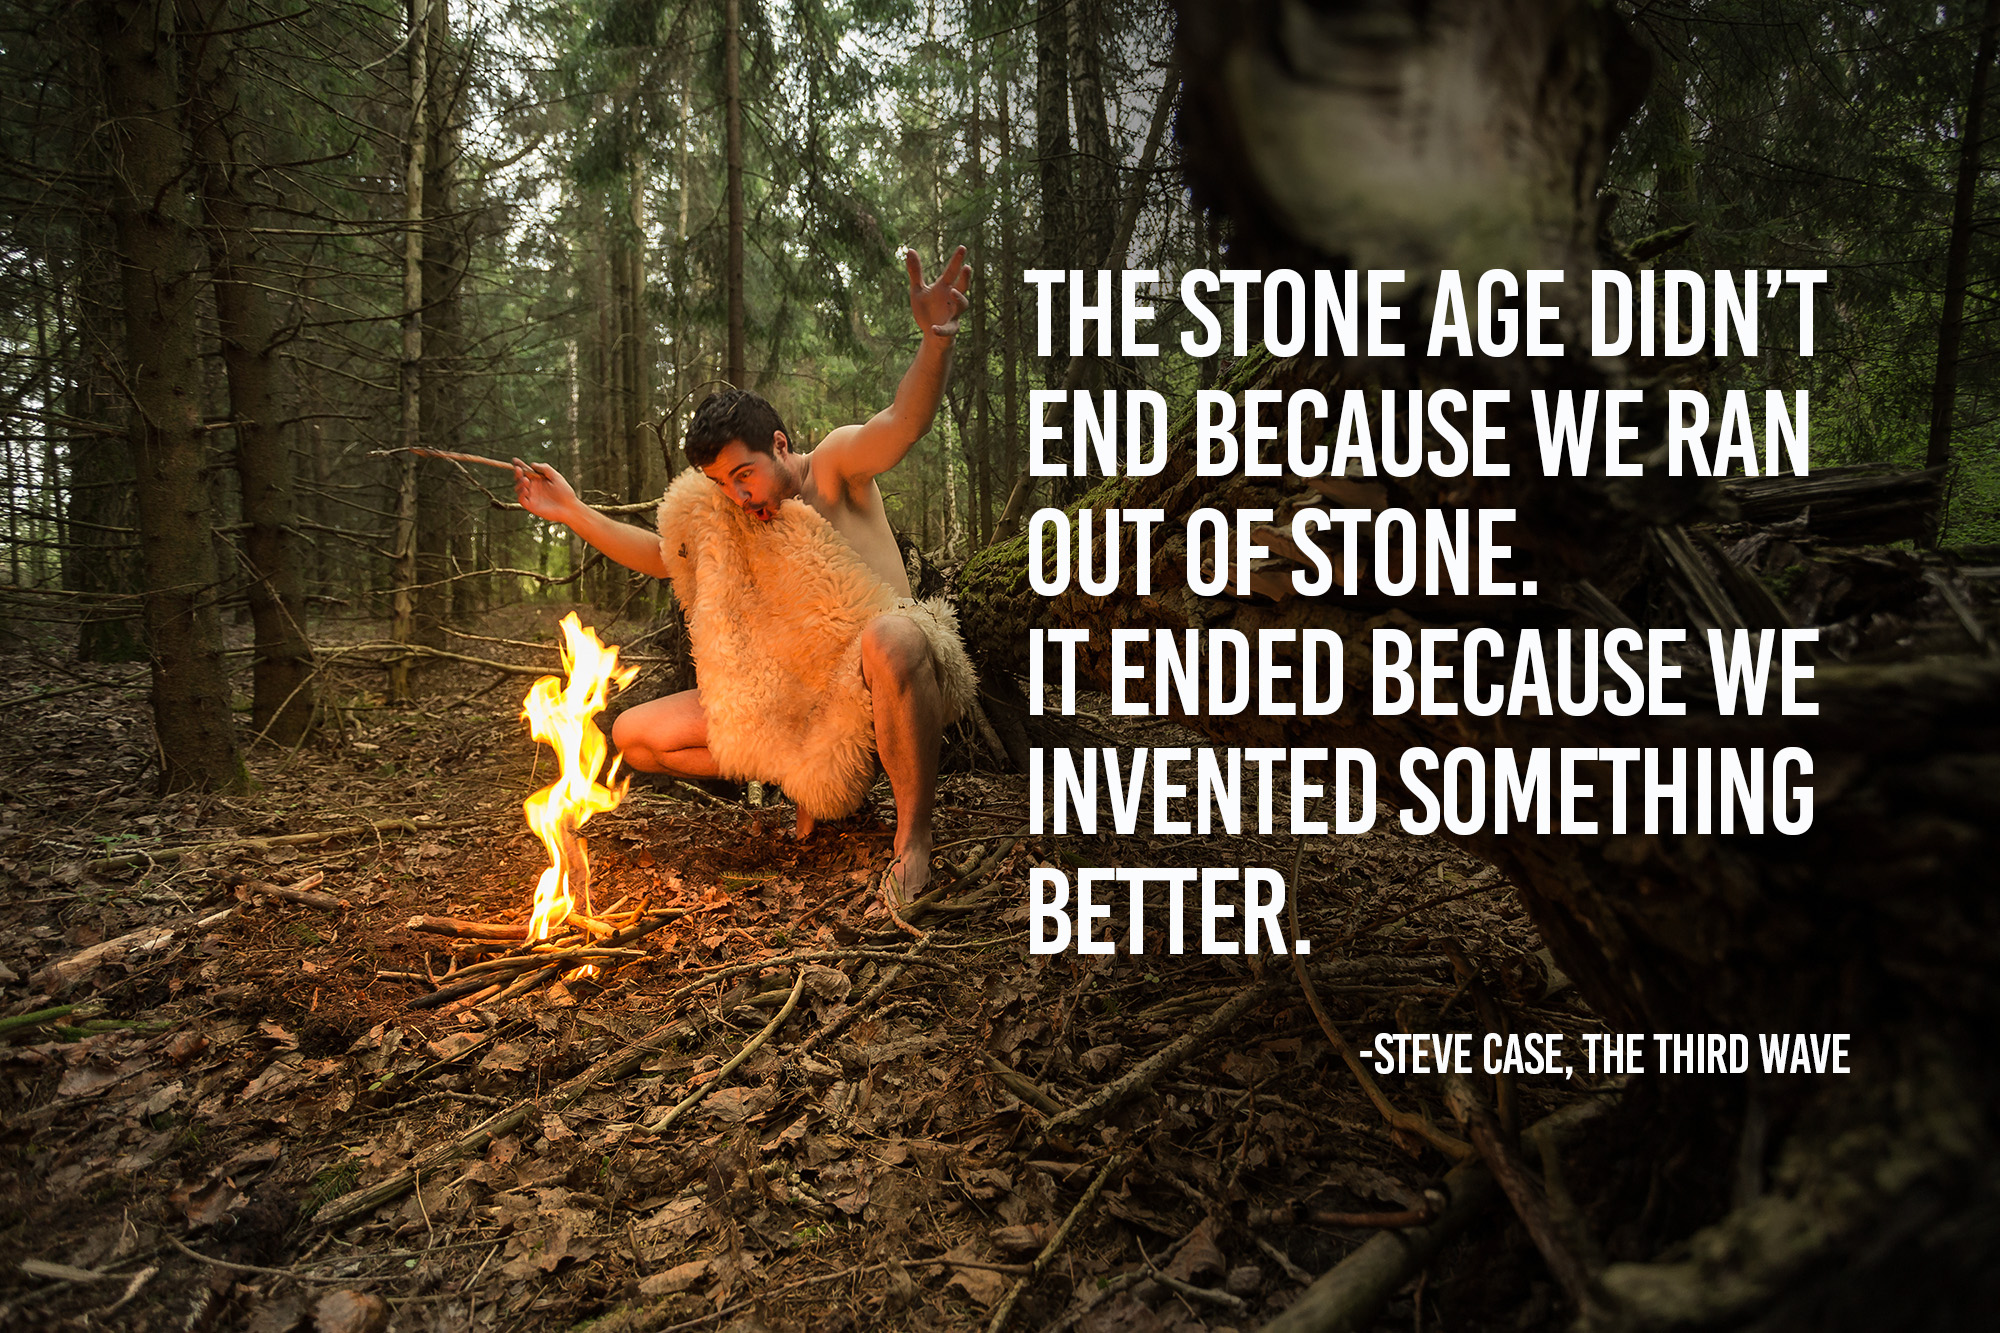 The-stone-age-didnt-end-because-we-ran-out-of-stone